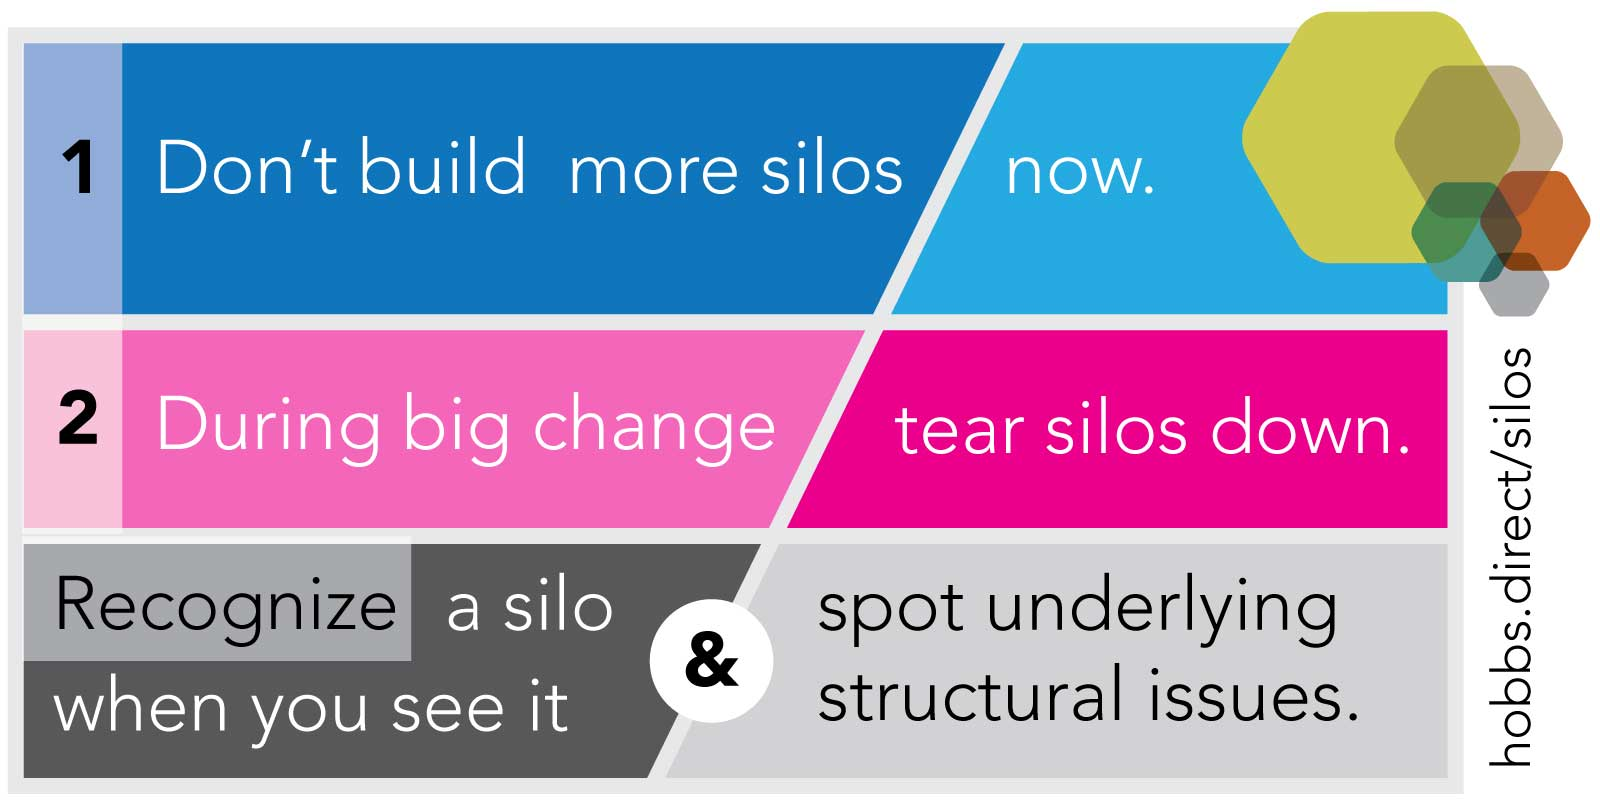 Right now, don't build more silos. When you make big changes, break silos down.